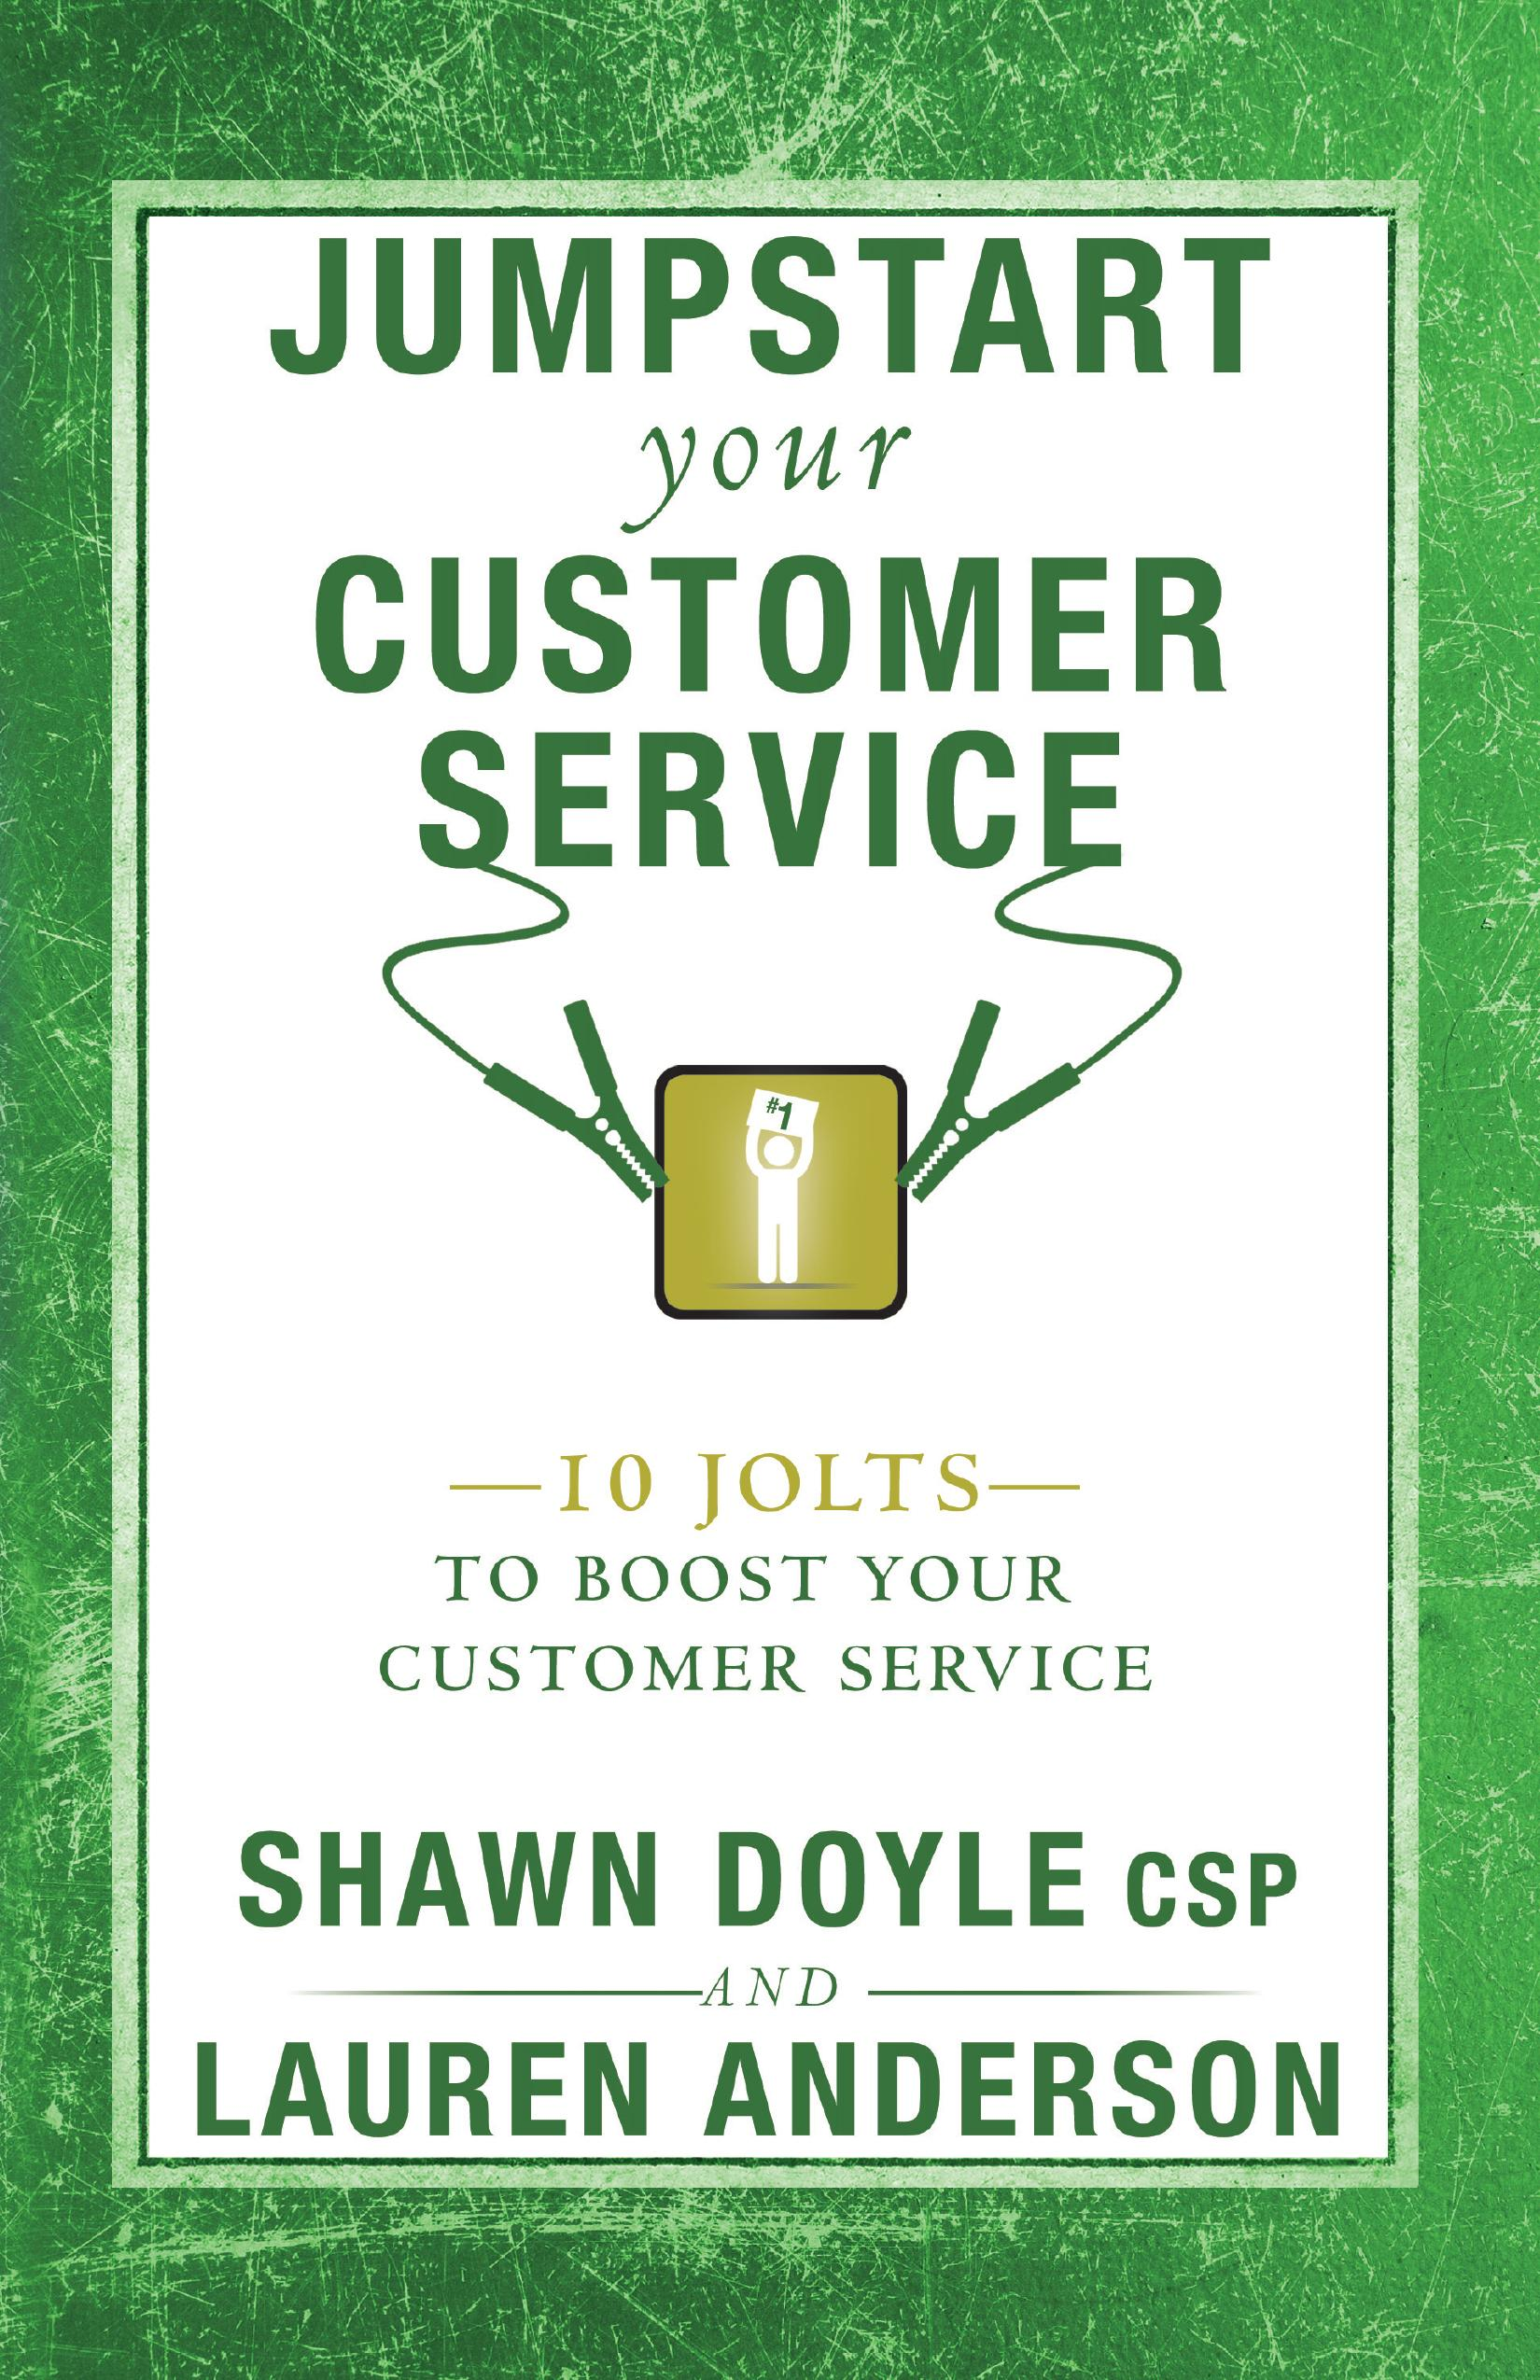 Drug May Jump Start Communication In >> Amazon Com Jumpstart Your Customer Service 10 Jolts To Boost Your